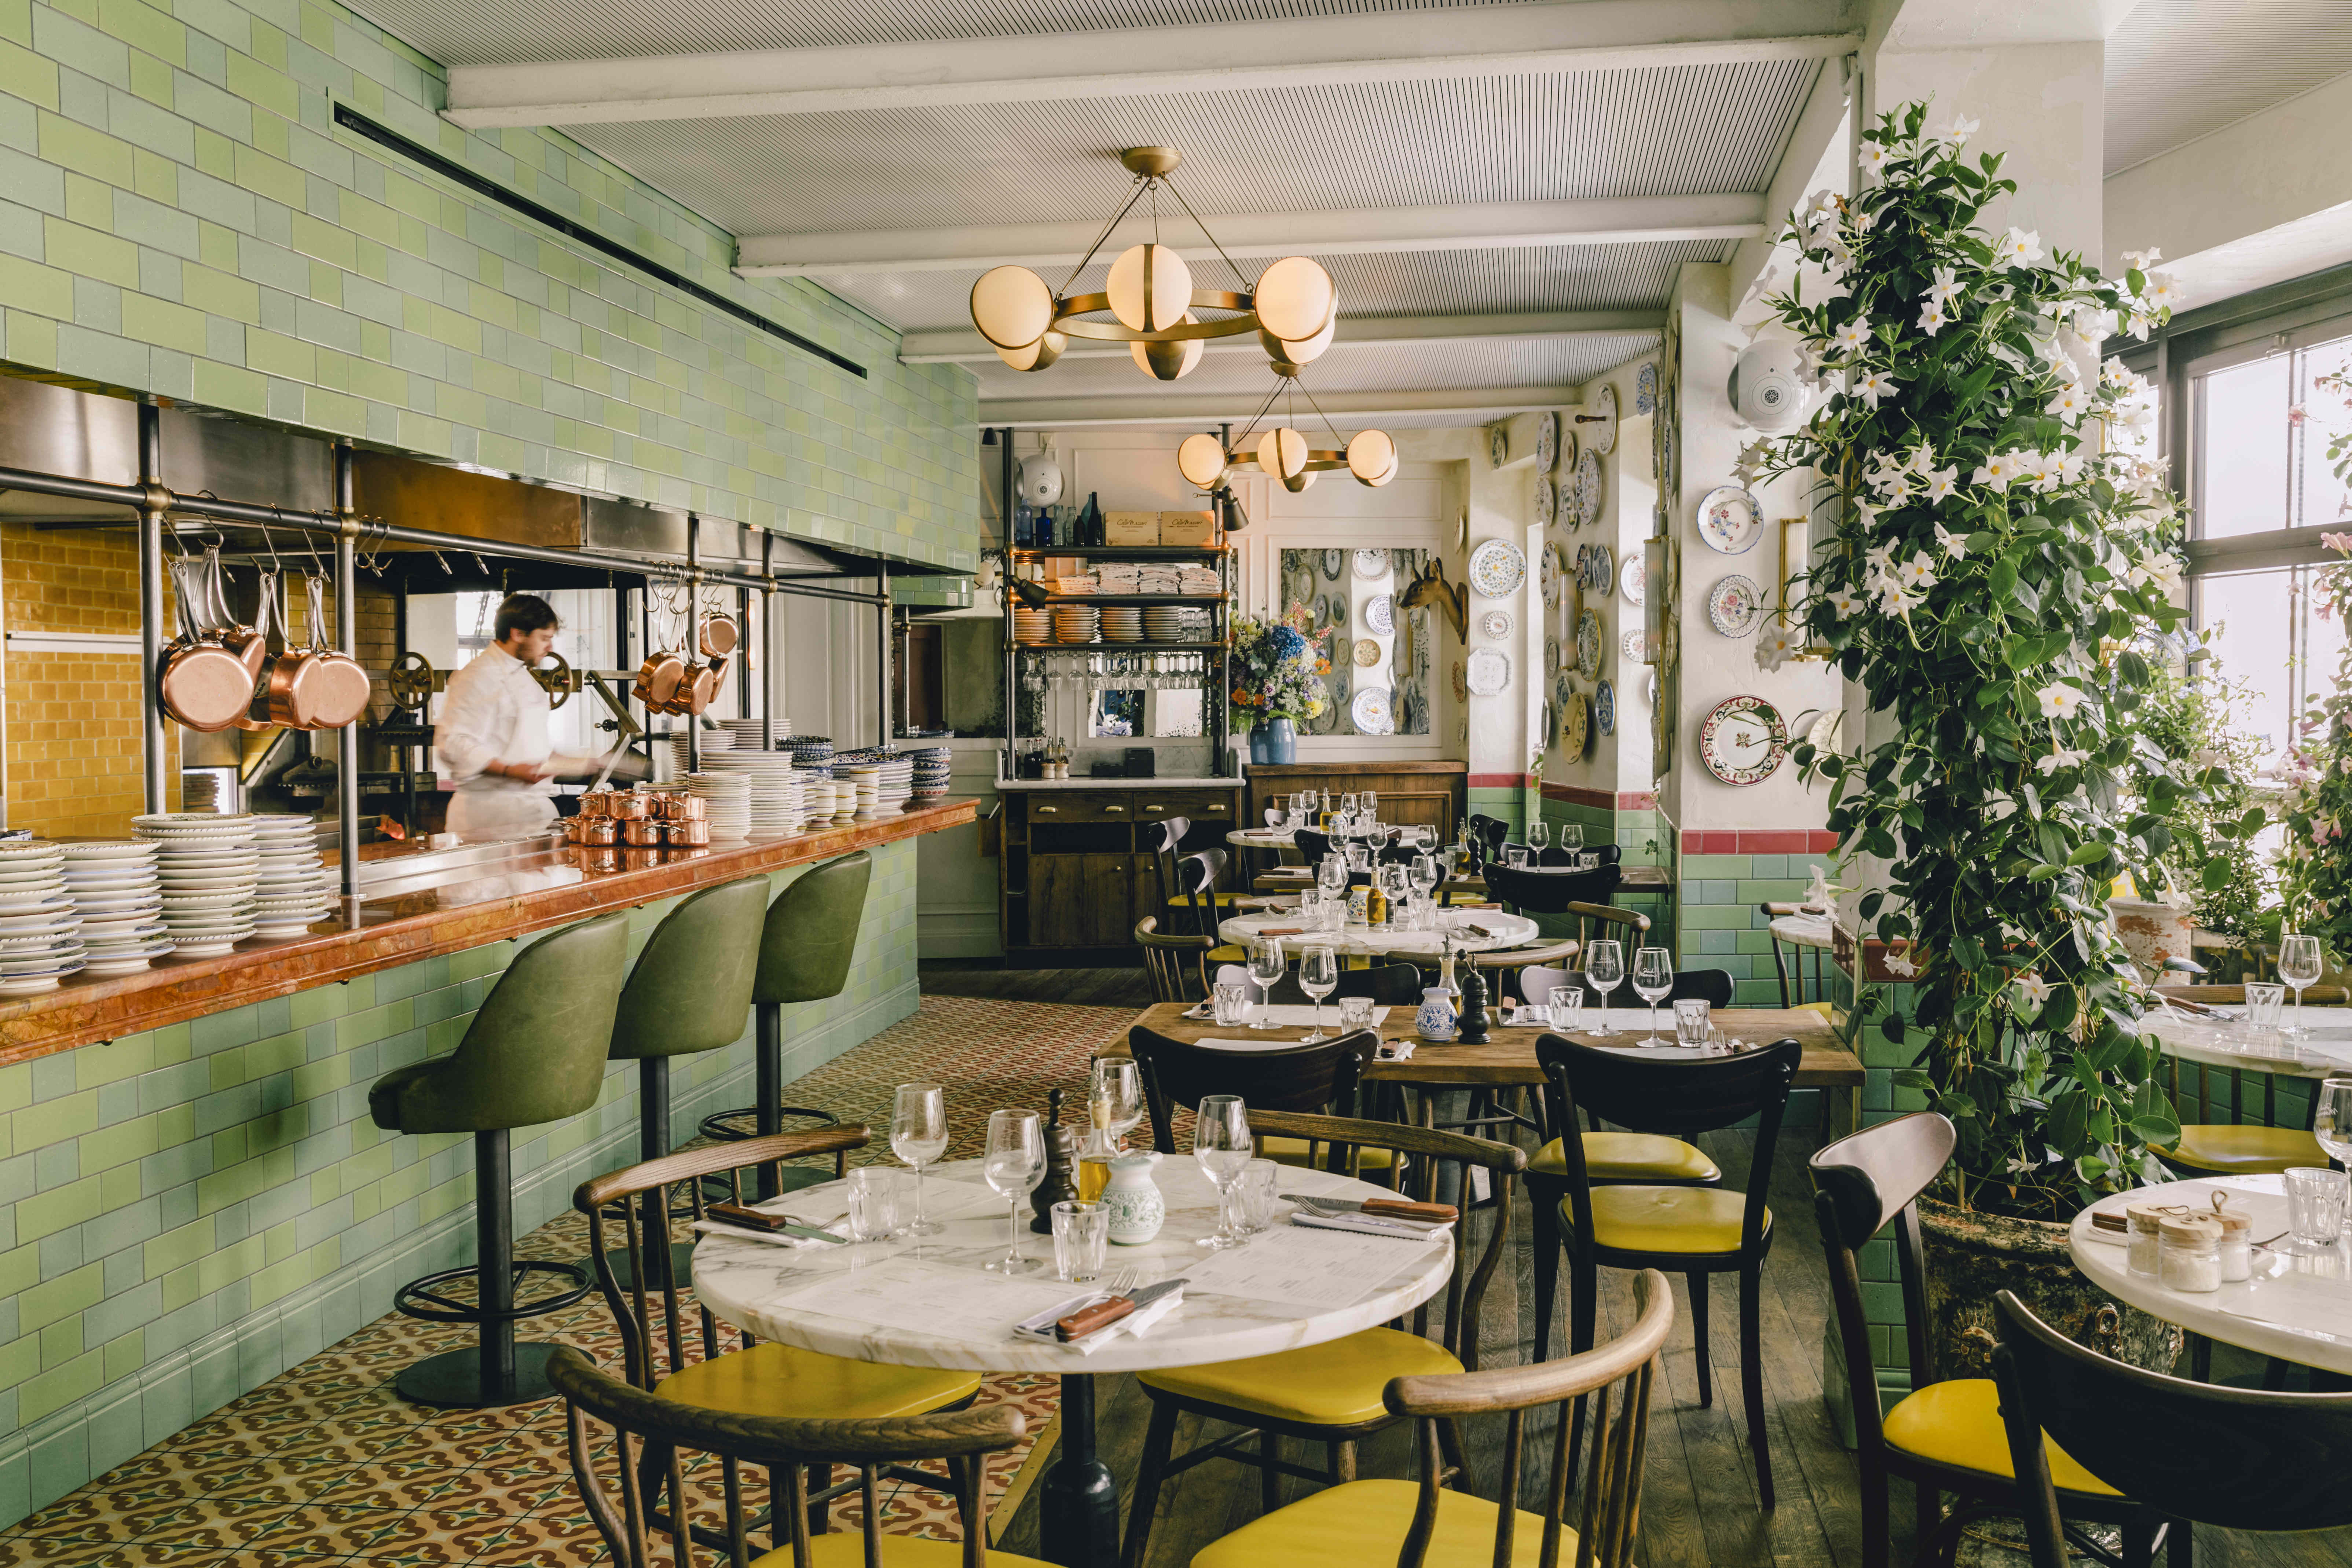 A green and plant-filled interior of a French restaurant.